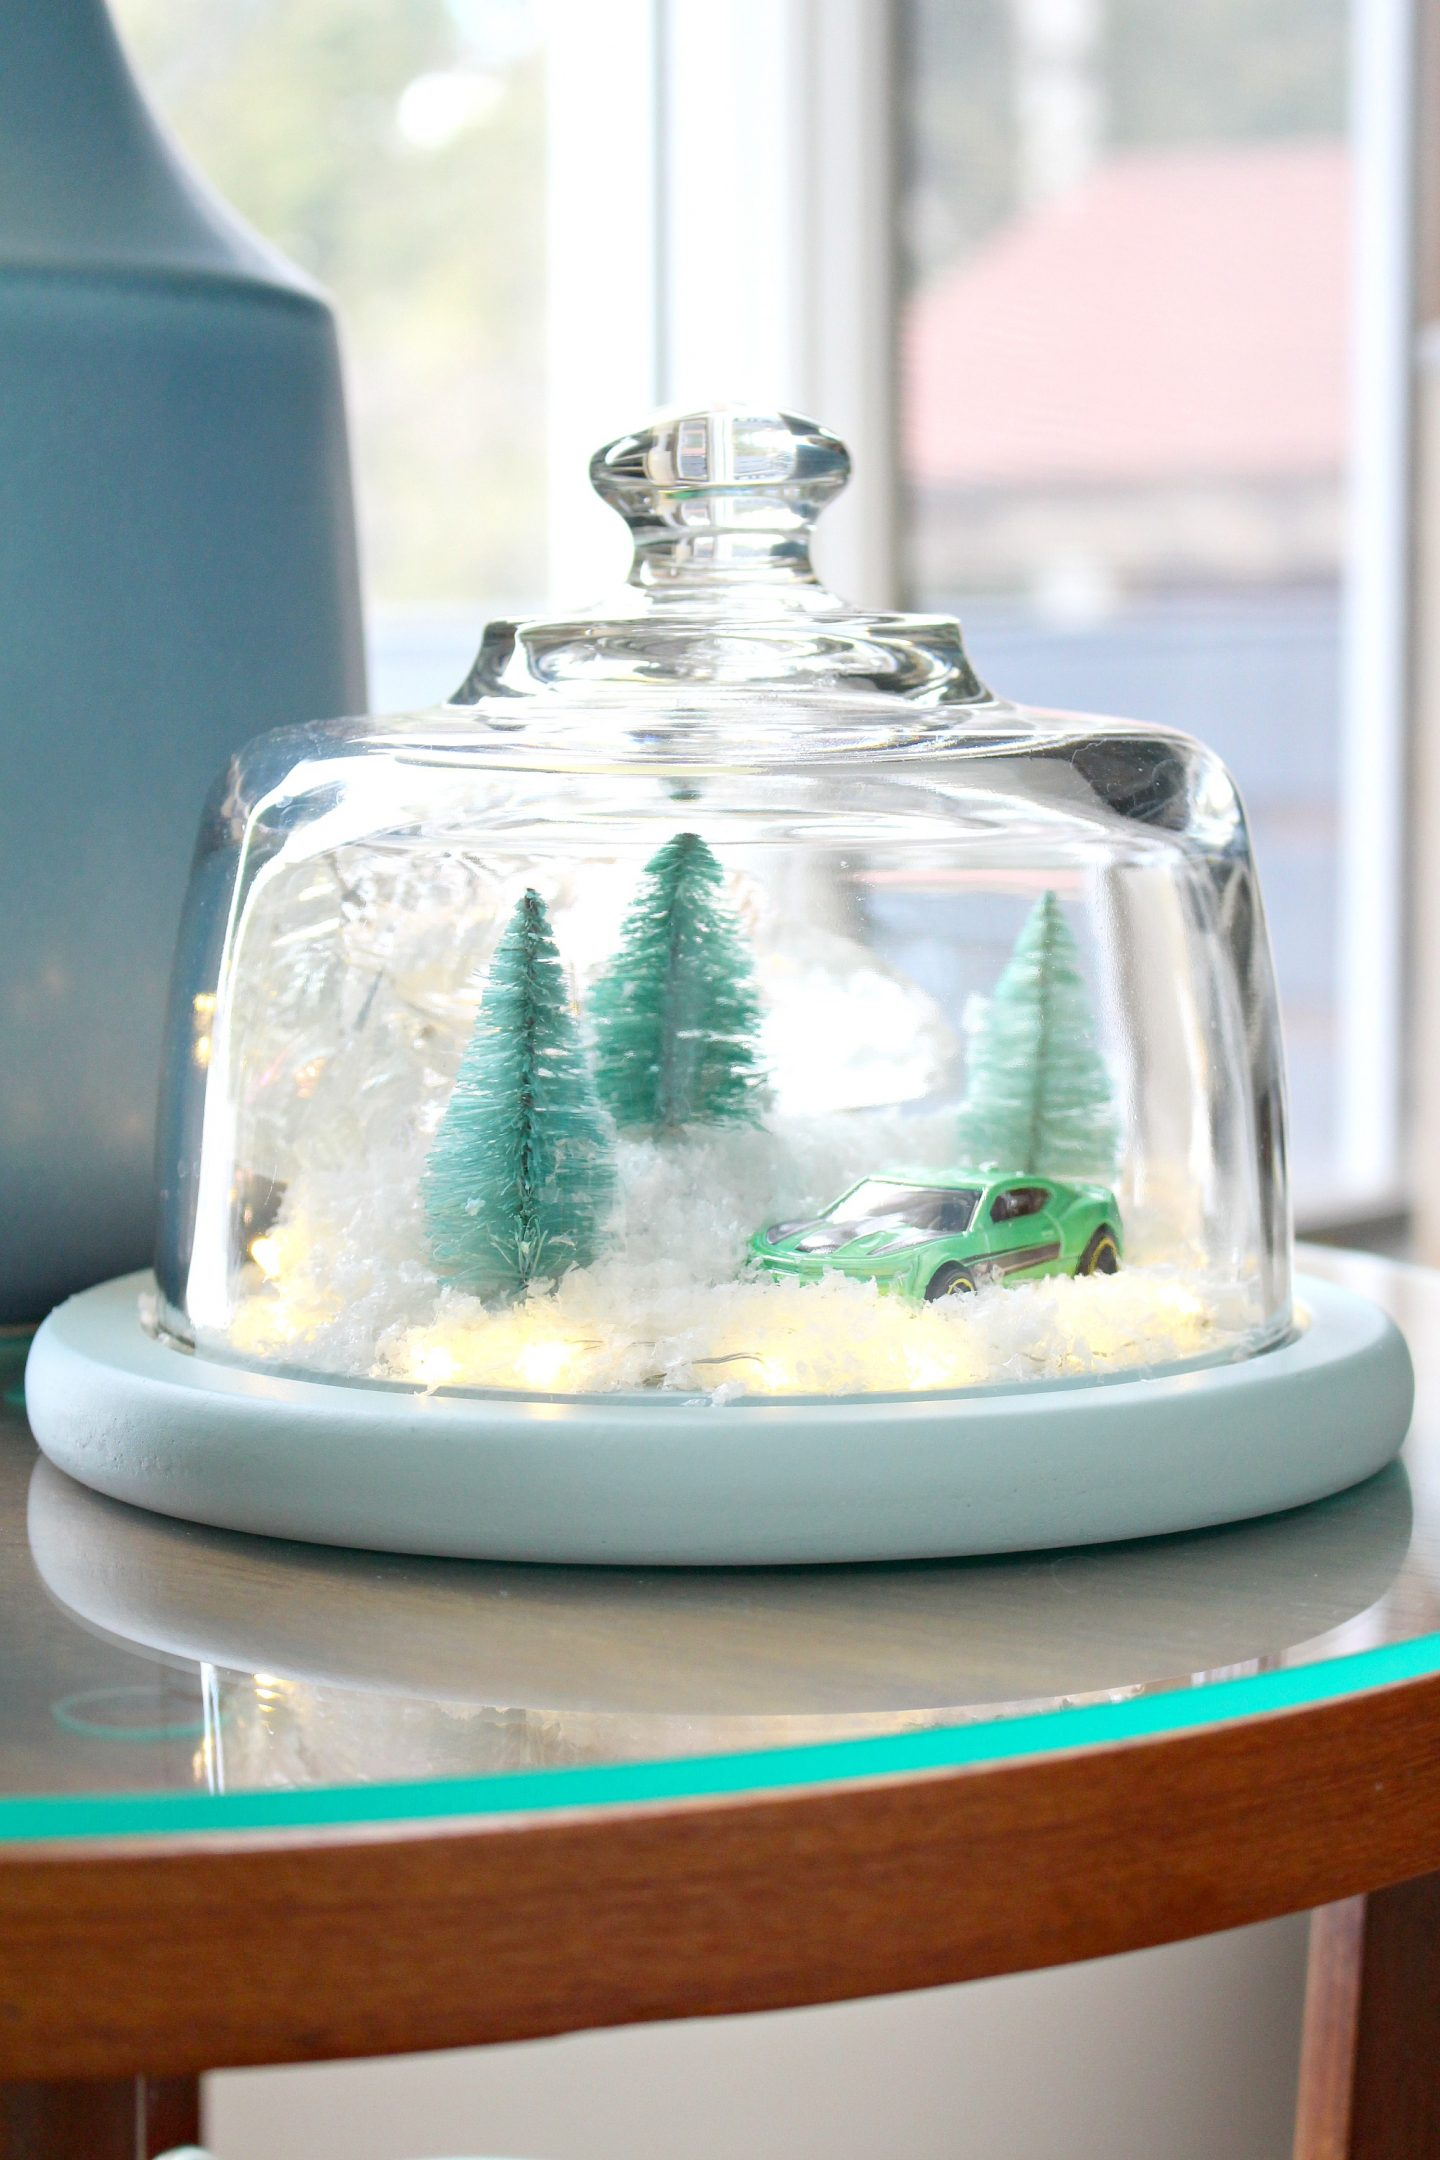 DIY Winter Diorama | aka The Camaro Cloche. Make this easy winter decor using a thrifted cheese cloche. Camaro themed holiday decor, lol! #diy #holidaydecor